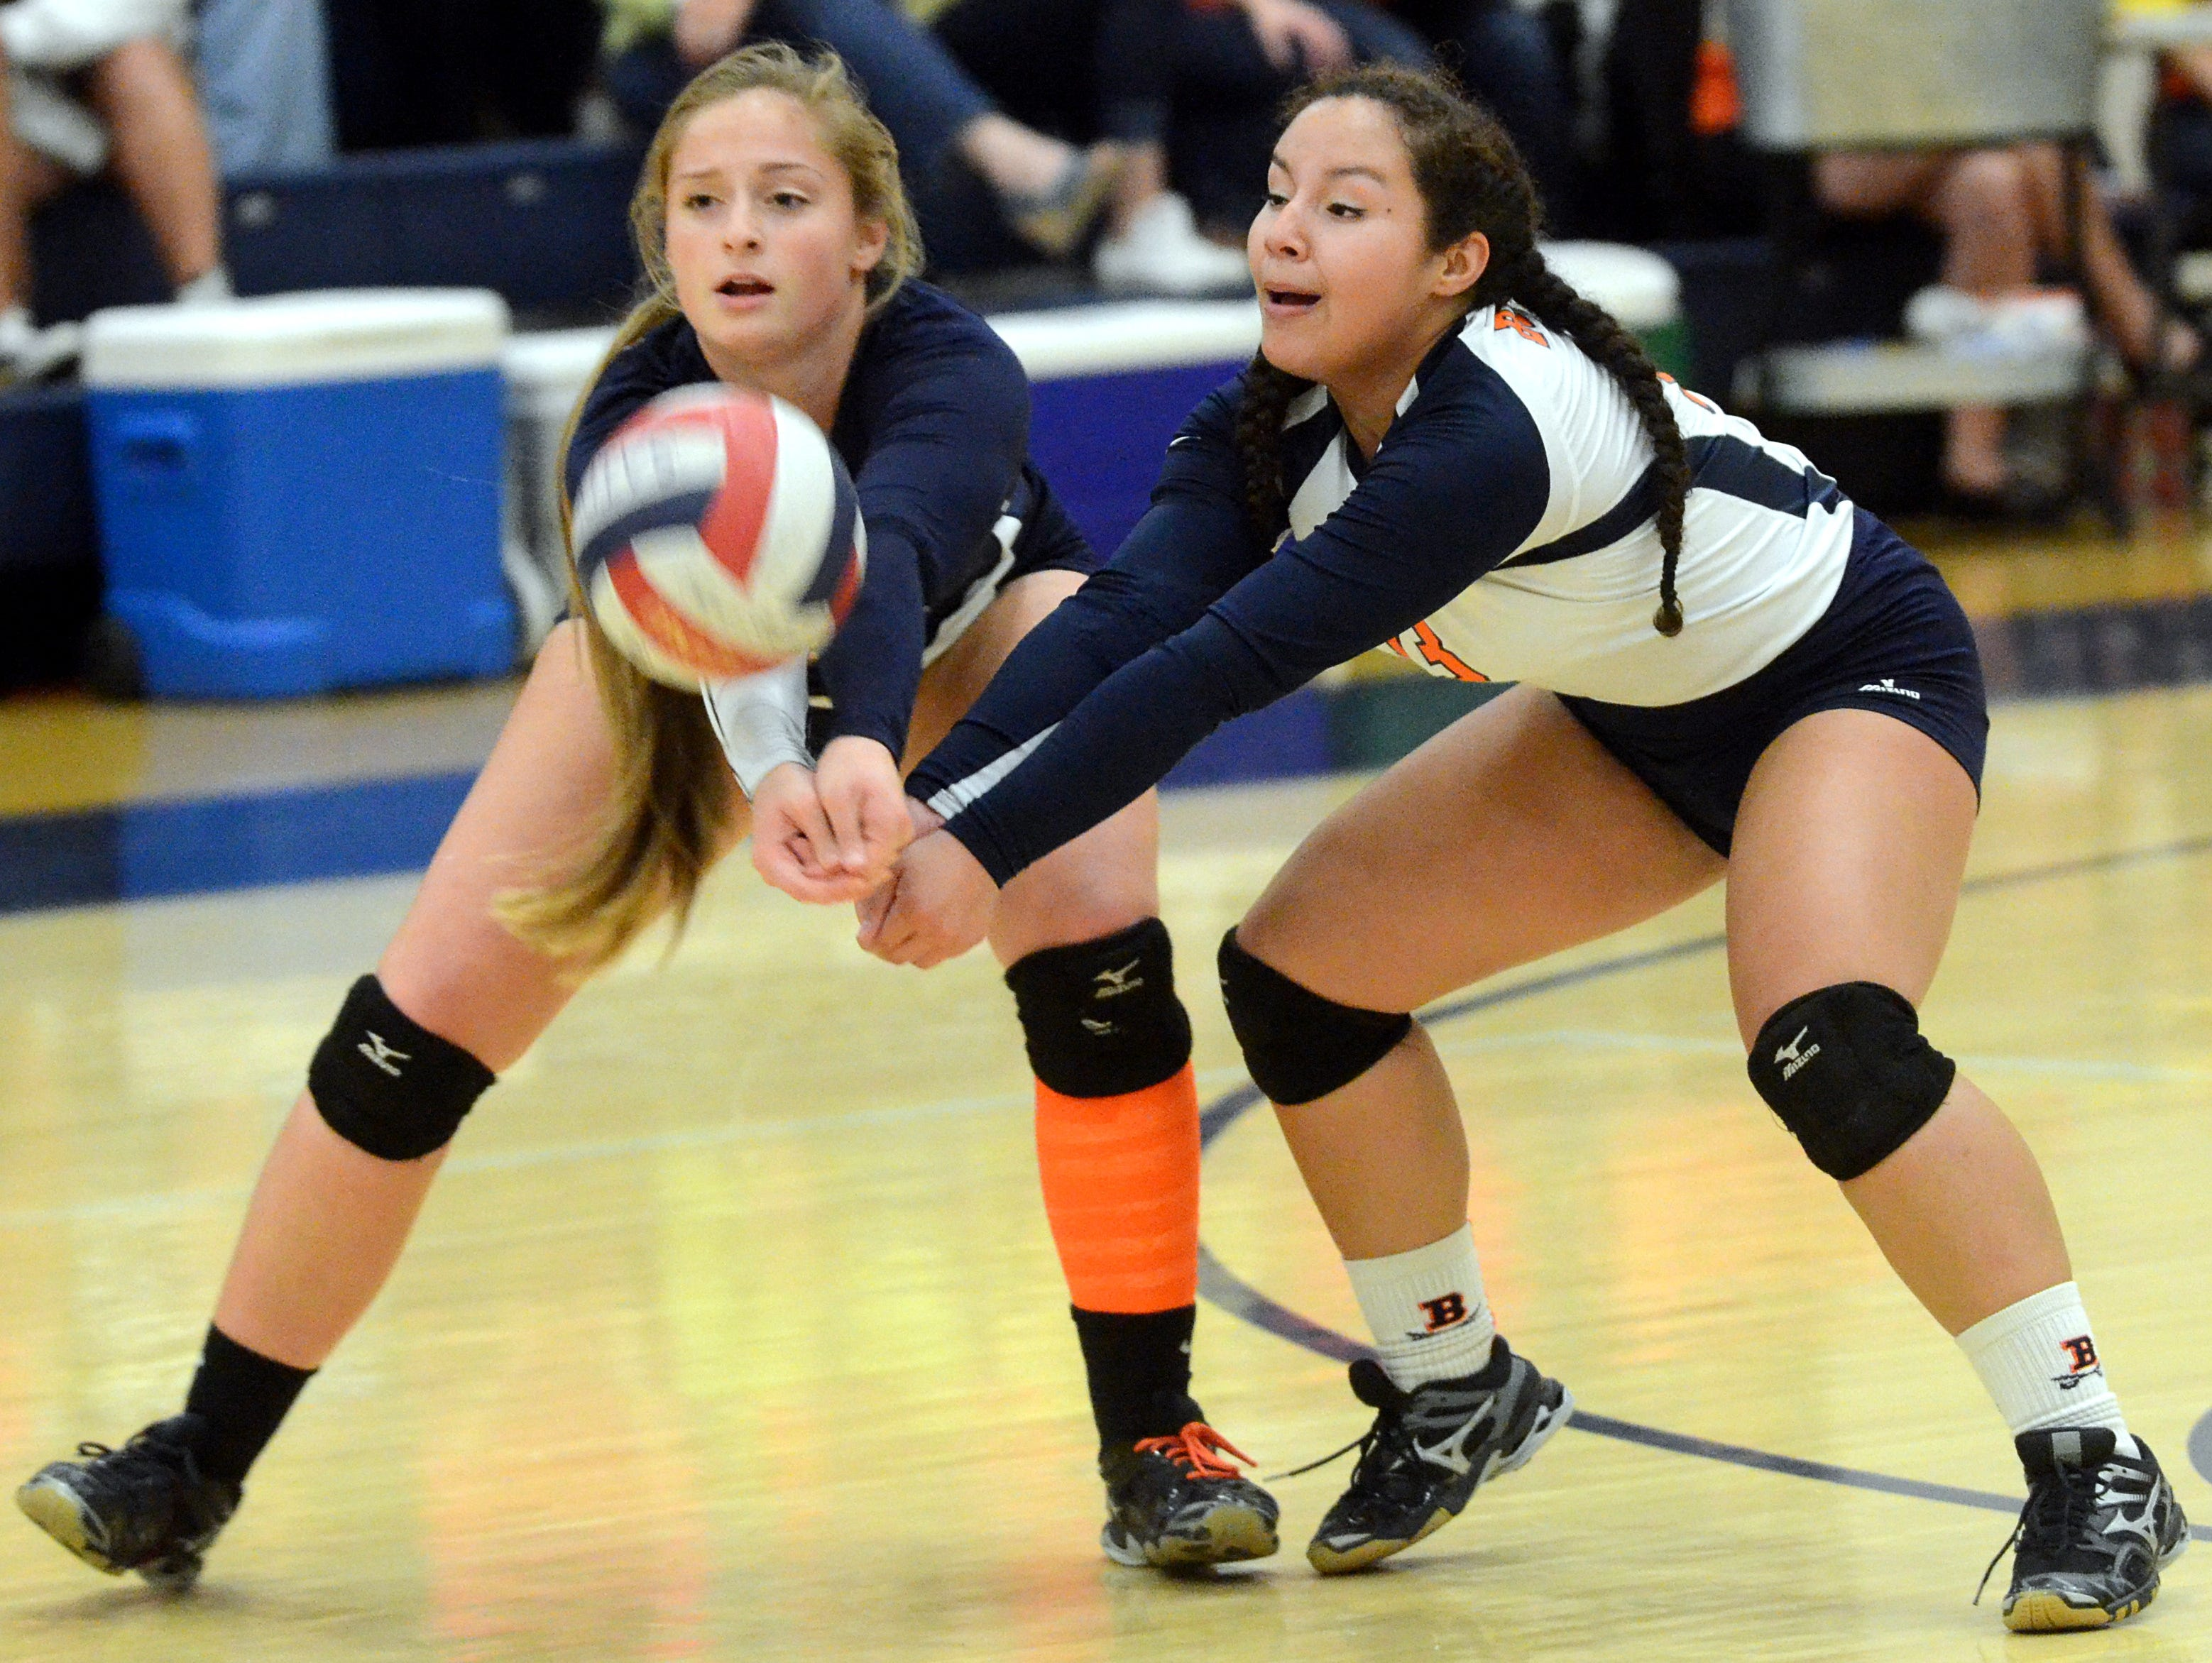 Beech High senior Saidee McDaniel and junior Veronica Gutierrez attempt to pass a serve during the first game of the Lady Buccaneers' sectional loss to Franklin on Thursday evening.